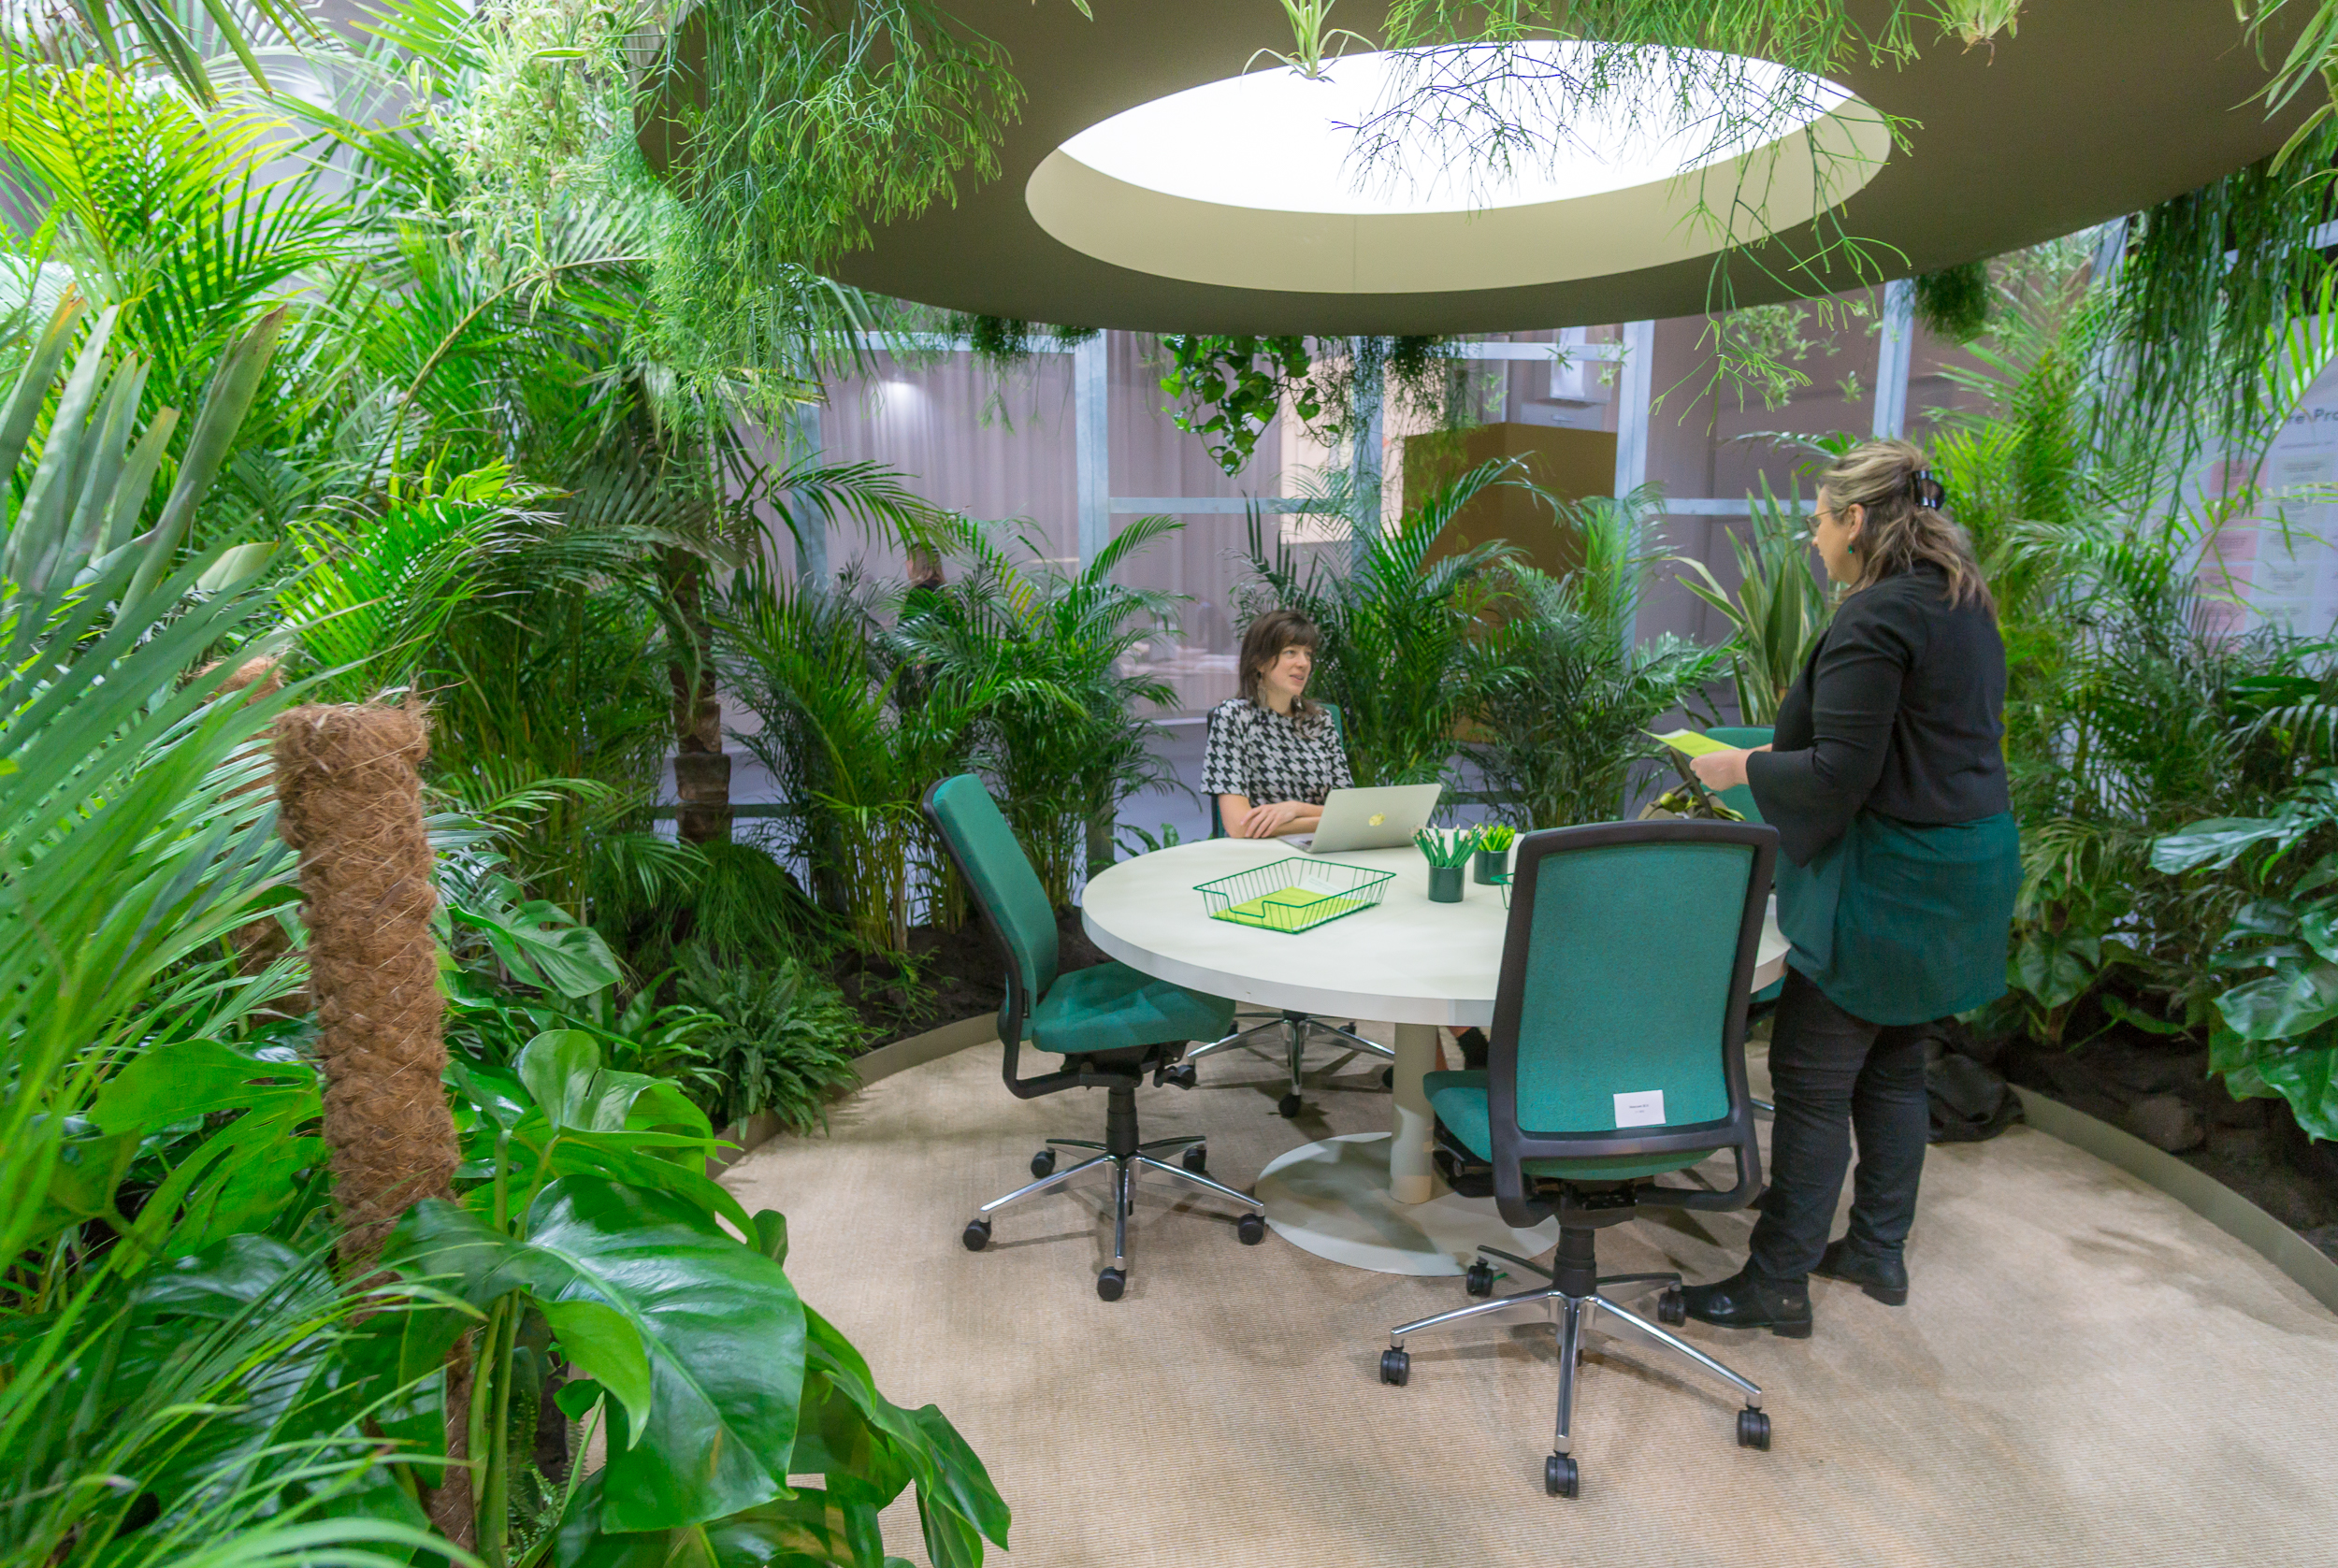 Green Workspace  According to the biophilia hypothesis, humans have an innate tendency to seek connections with nature. This is translating into design changes within the built environment. As we become more urban, designers, planners and city dwellers are seeking increasingly inventive ways to find a home for nature in the city. From the cultivation of house plants, window boxes and home mini ecosystems to allotments, pop-up green oases and even vast vertical gardens, contemporary city dwellers are striving to re-wild the city, one shrub at a time.  In working environments, it has been proved that biophilic design not only creates a cleaner, less toxic atmosphere, but also leads to an improved sense of wellbeing and greater levels of focus. Enhance your productivity and make use of the Green Workspace. Here you will find specially selected plants that purify the air.